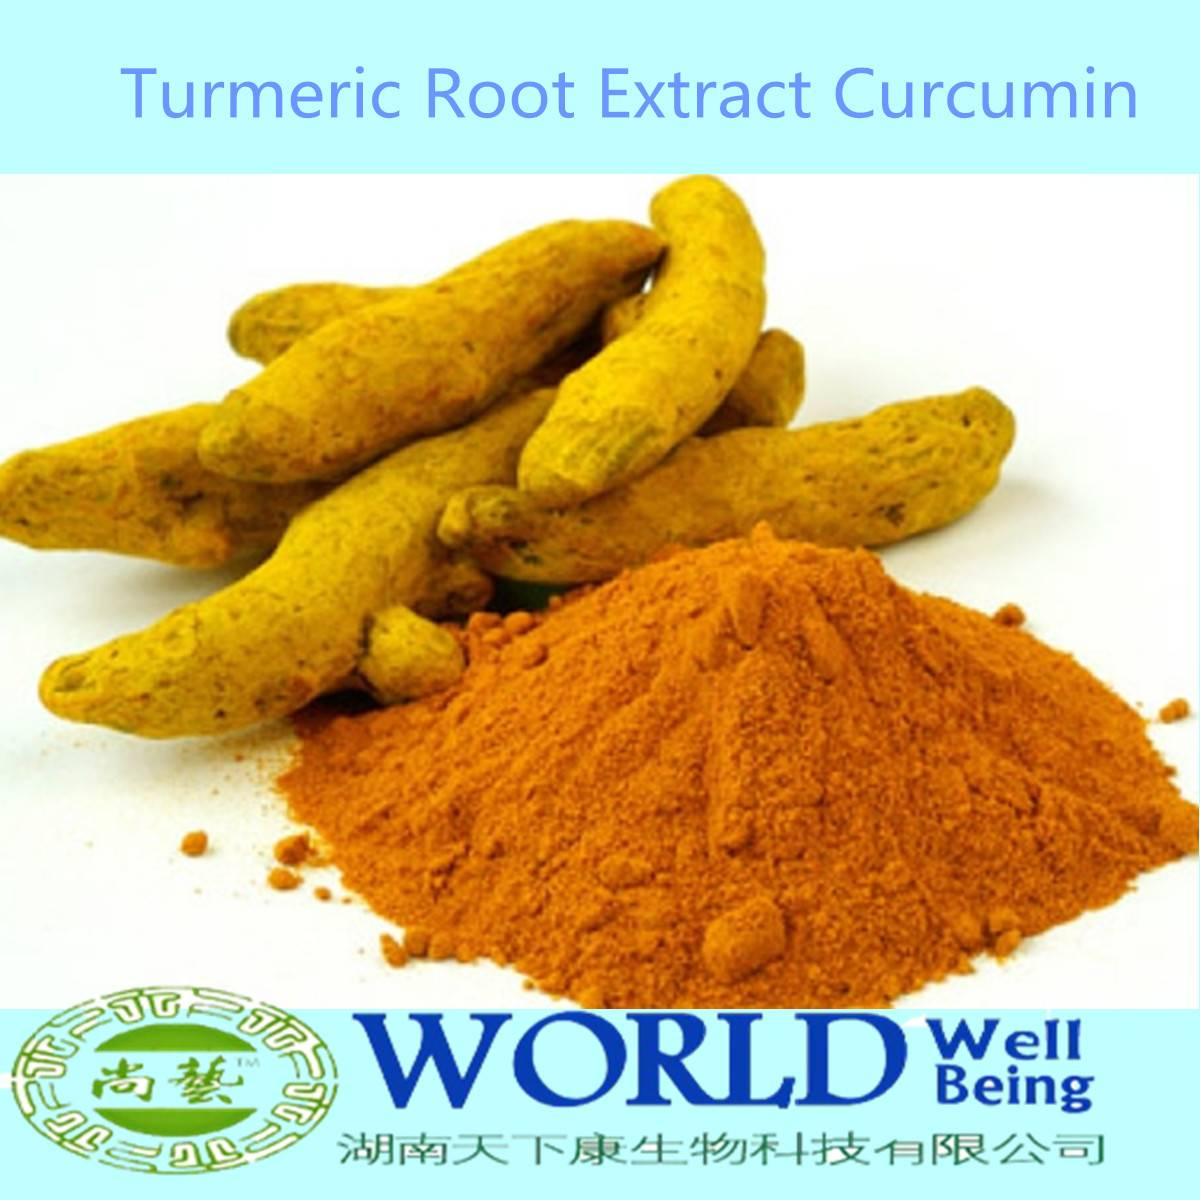 Hot Selling High Quality 95% Turmeric Powder,Curcumin Extract Turmeric Root Extract Powder,Turmeric